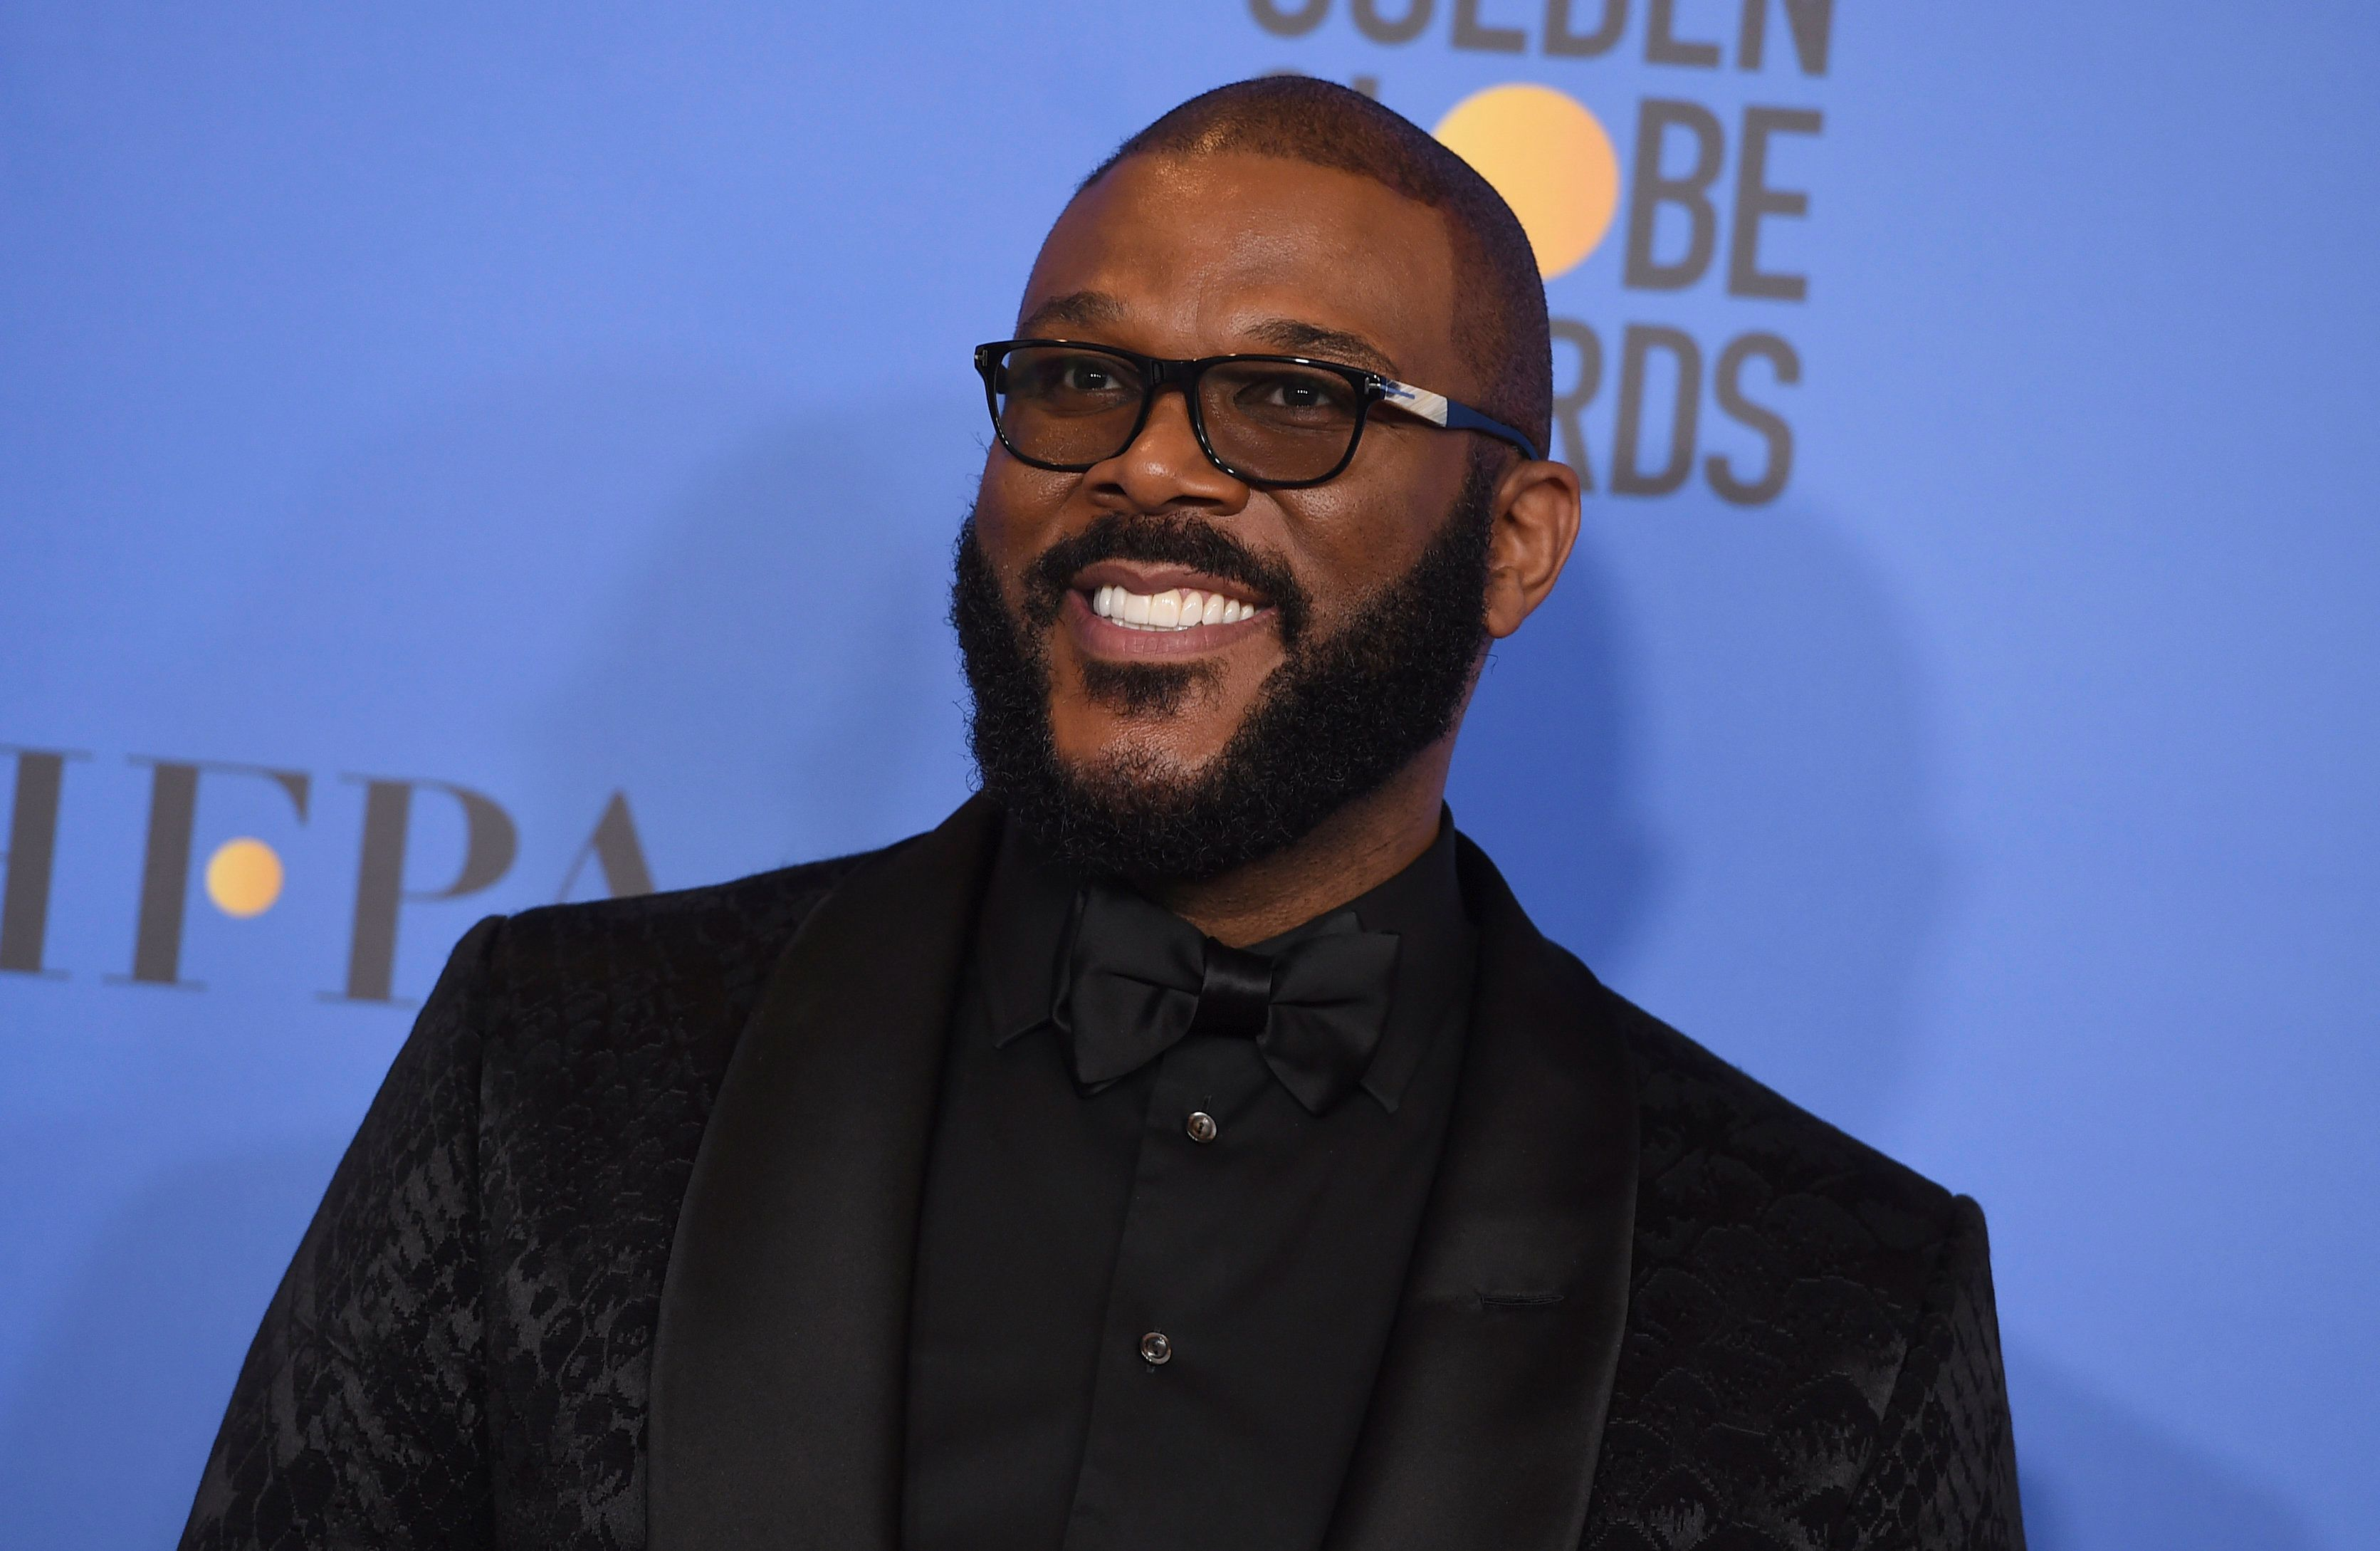 Tyler Perry poses in the press room at the 76th annual Golden Globe Awards at the Beverly Hilton Hotel on Sunday, Jan. 6, 2019, in Beverly Hills, Calif. (Photo by Jordan Strauss/Invision/AP)